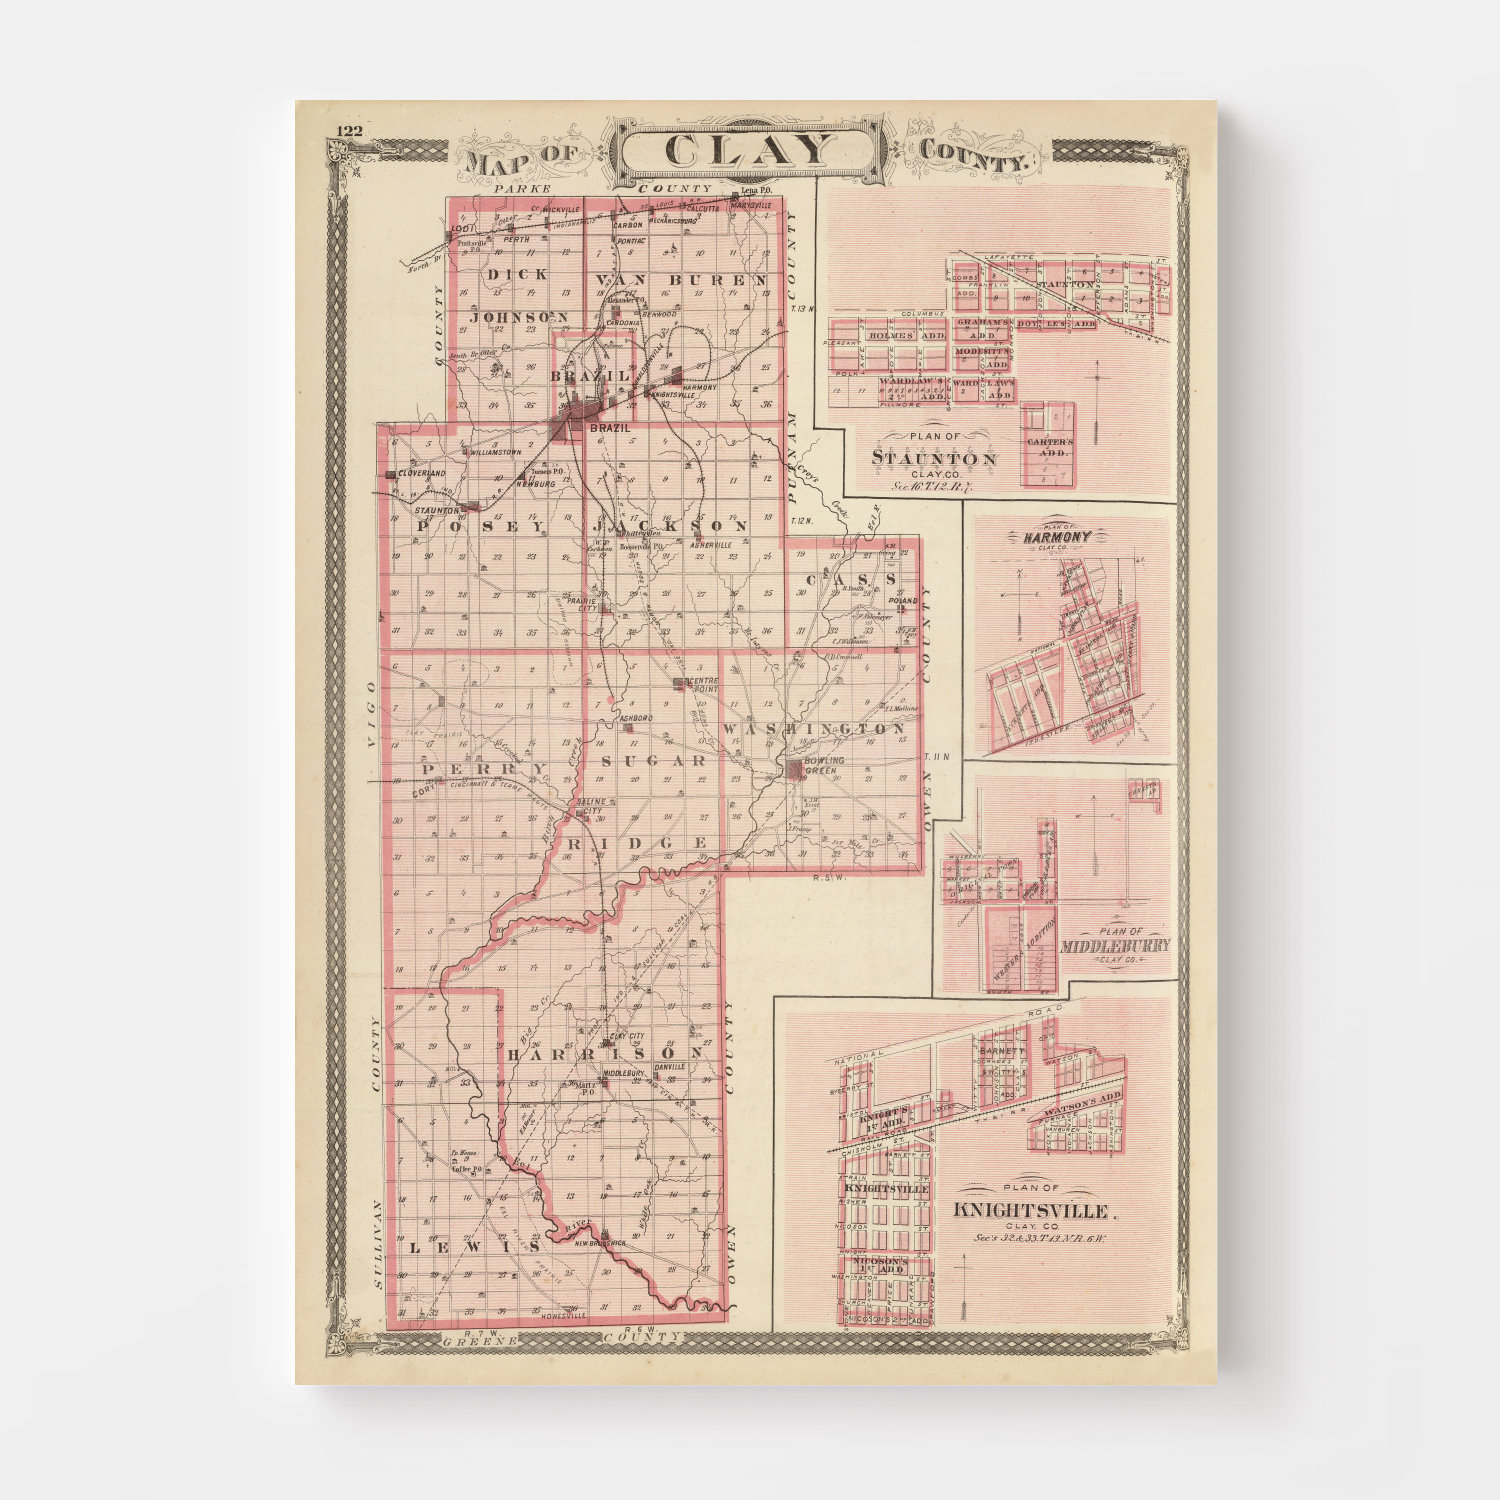 Vintage Map of Clay County Indiana, 1876